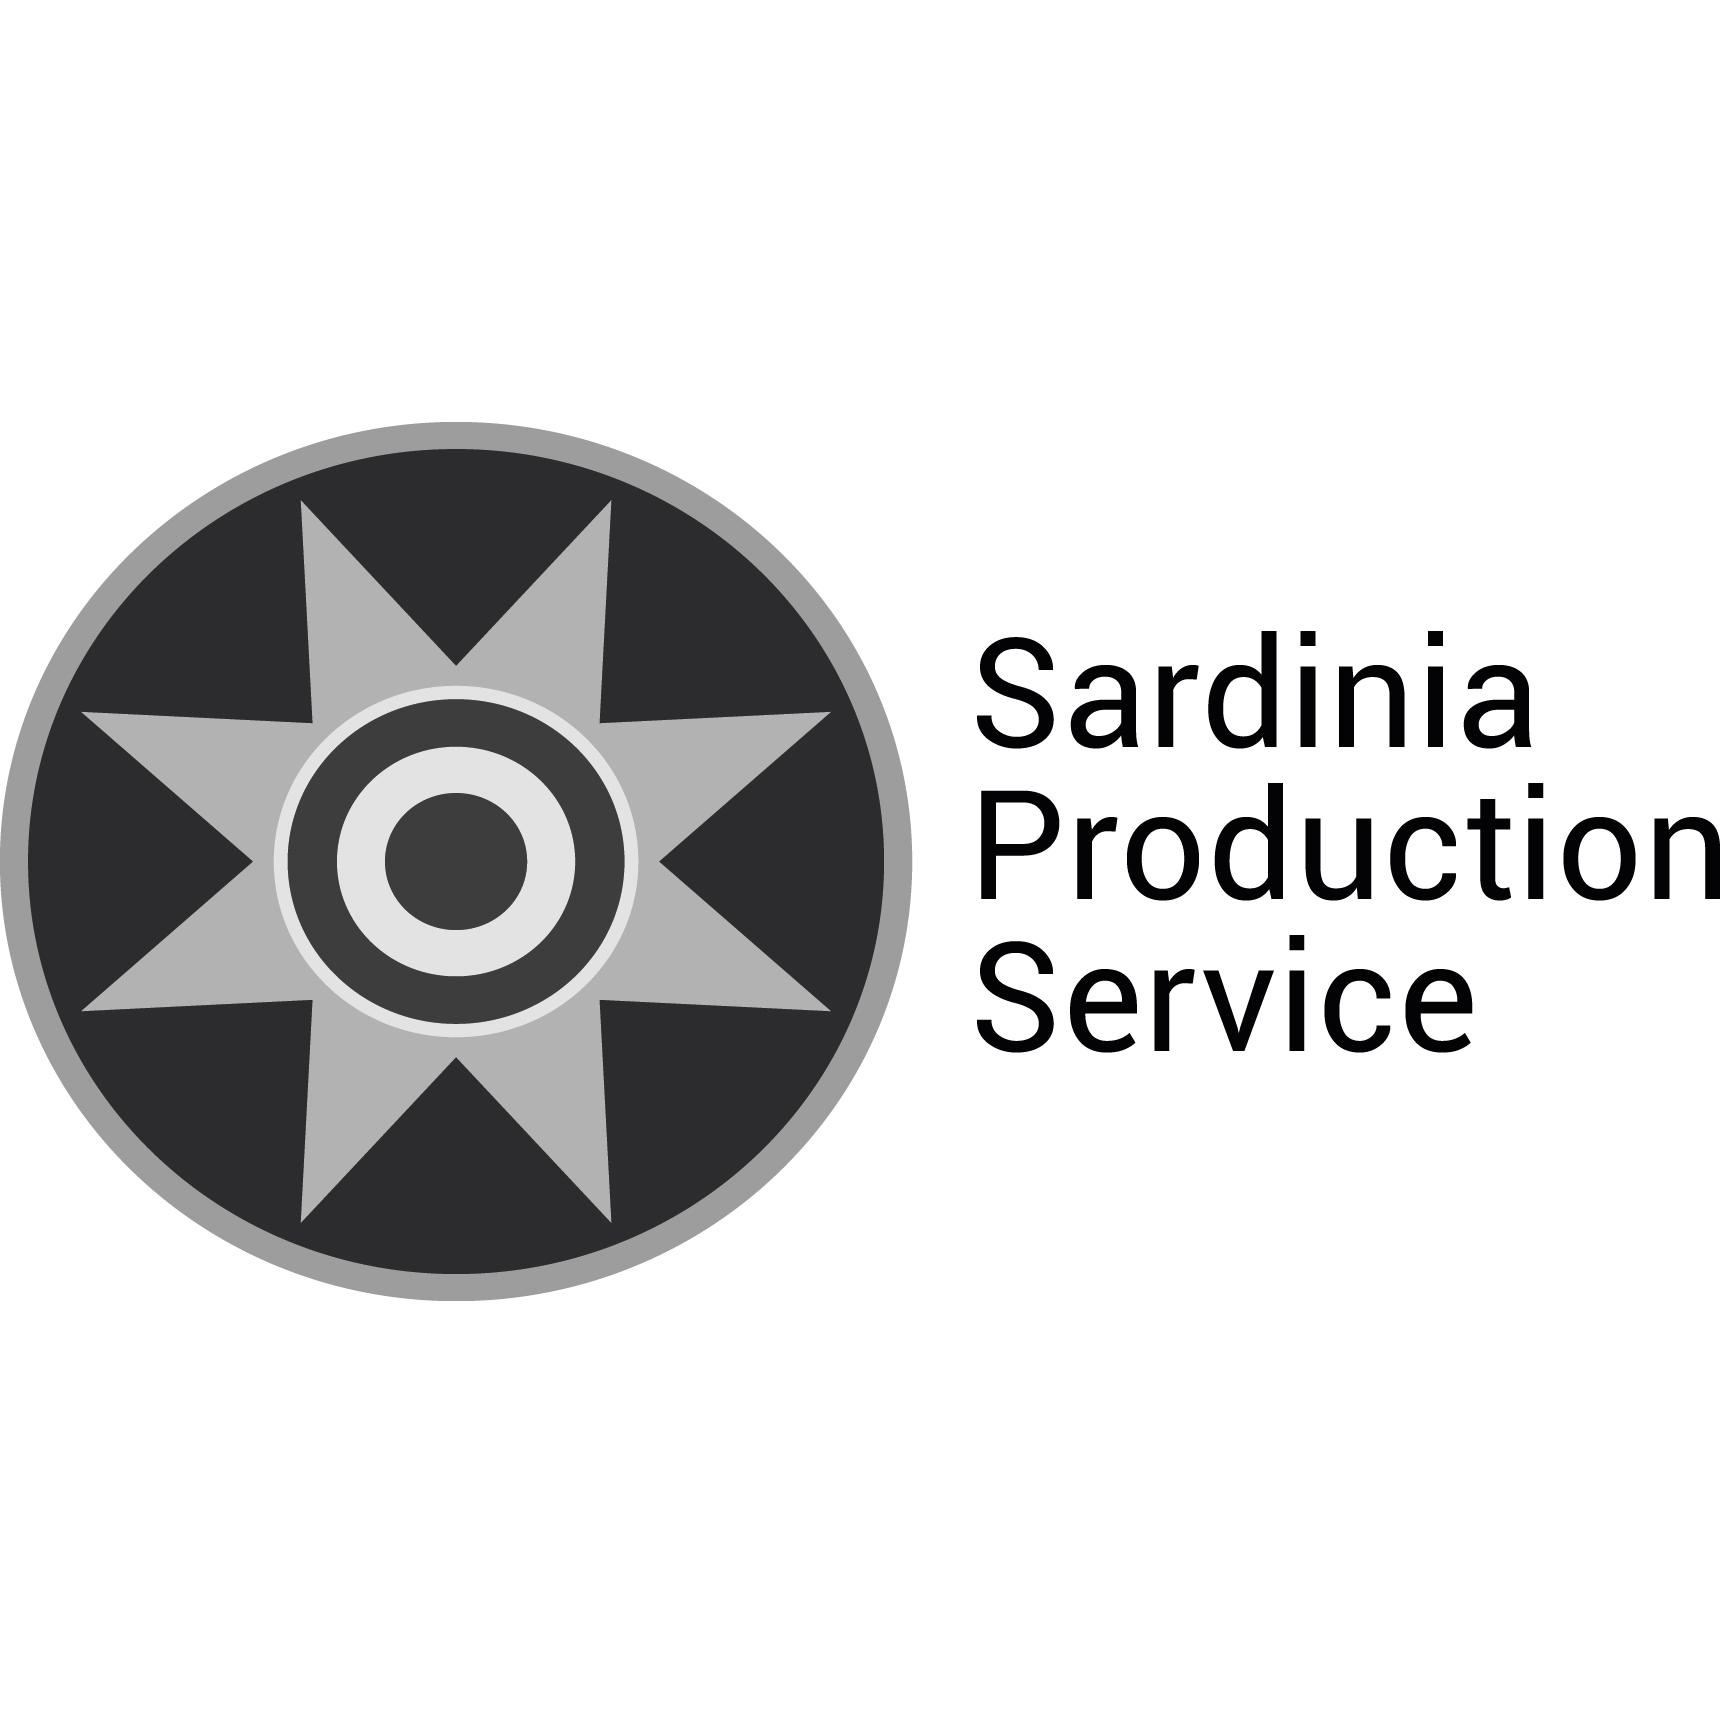 Sardinia Production Service